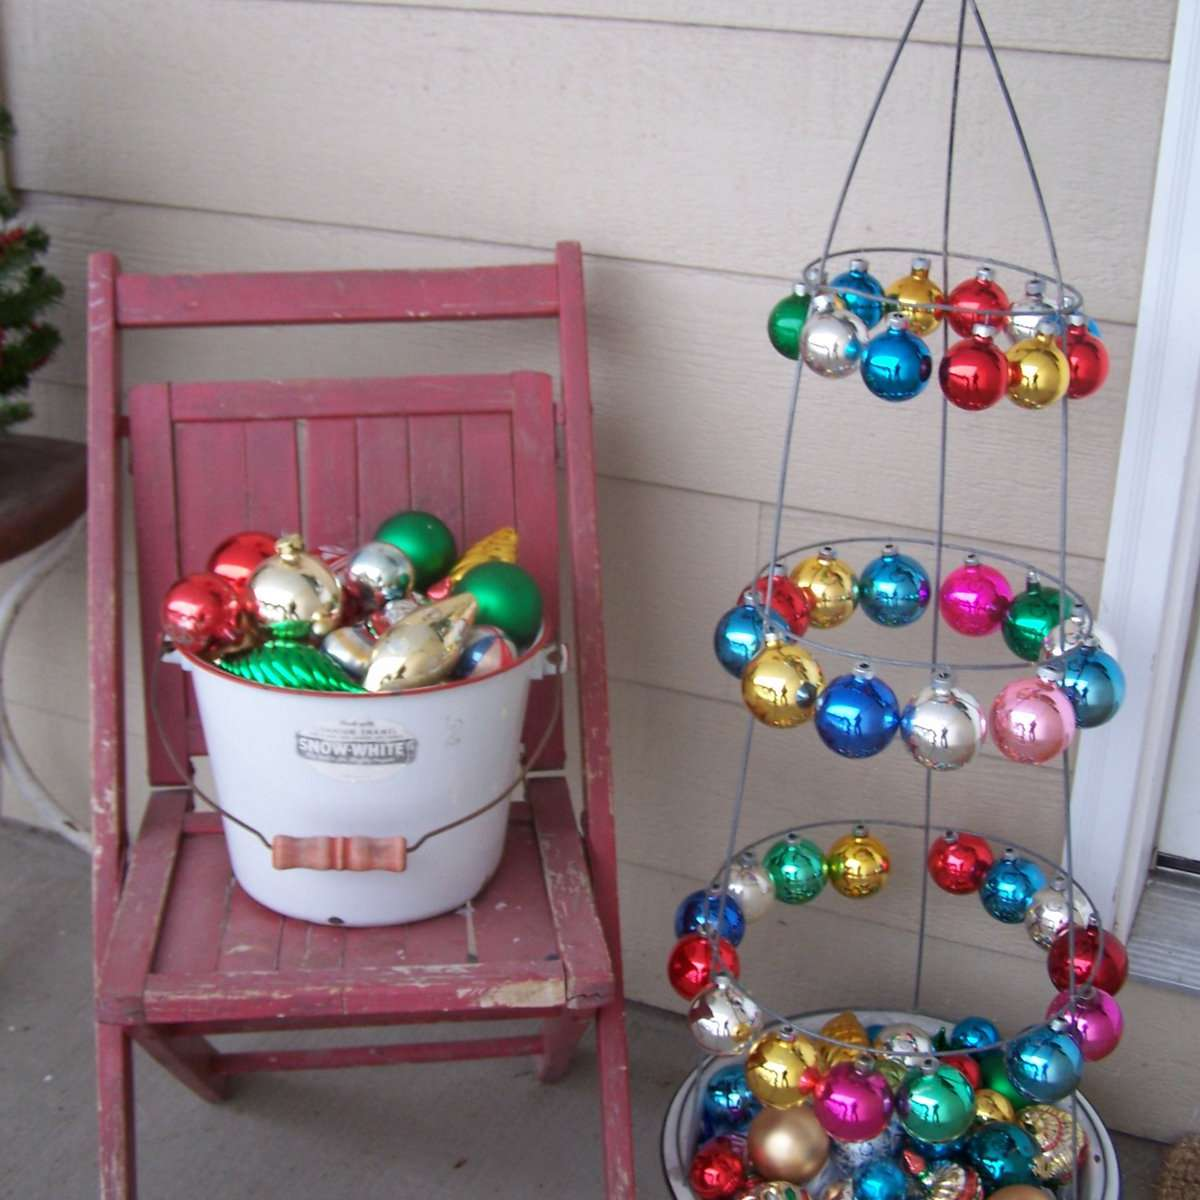 A wire Christmas tree on a porch